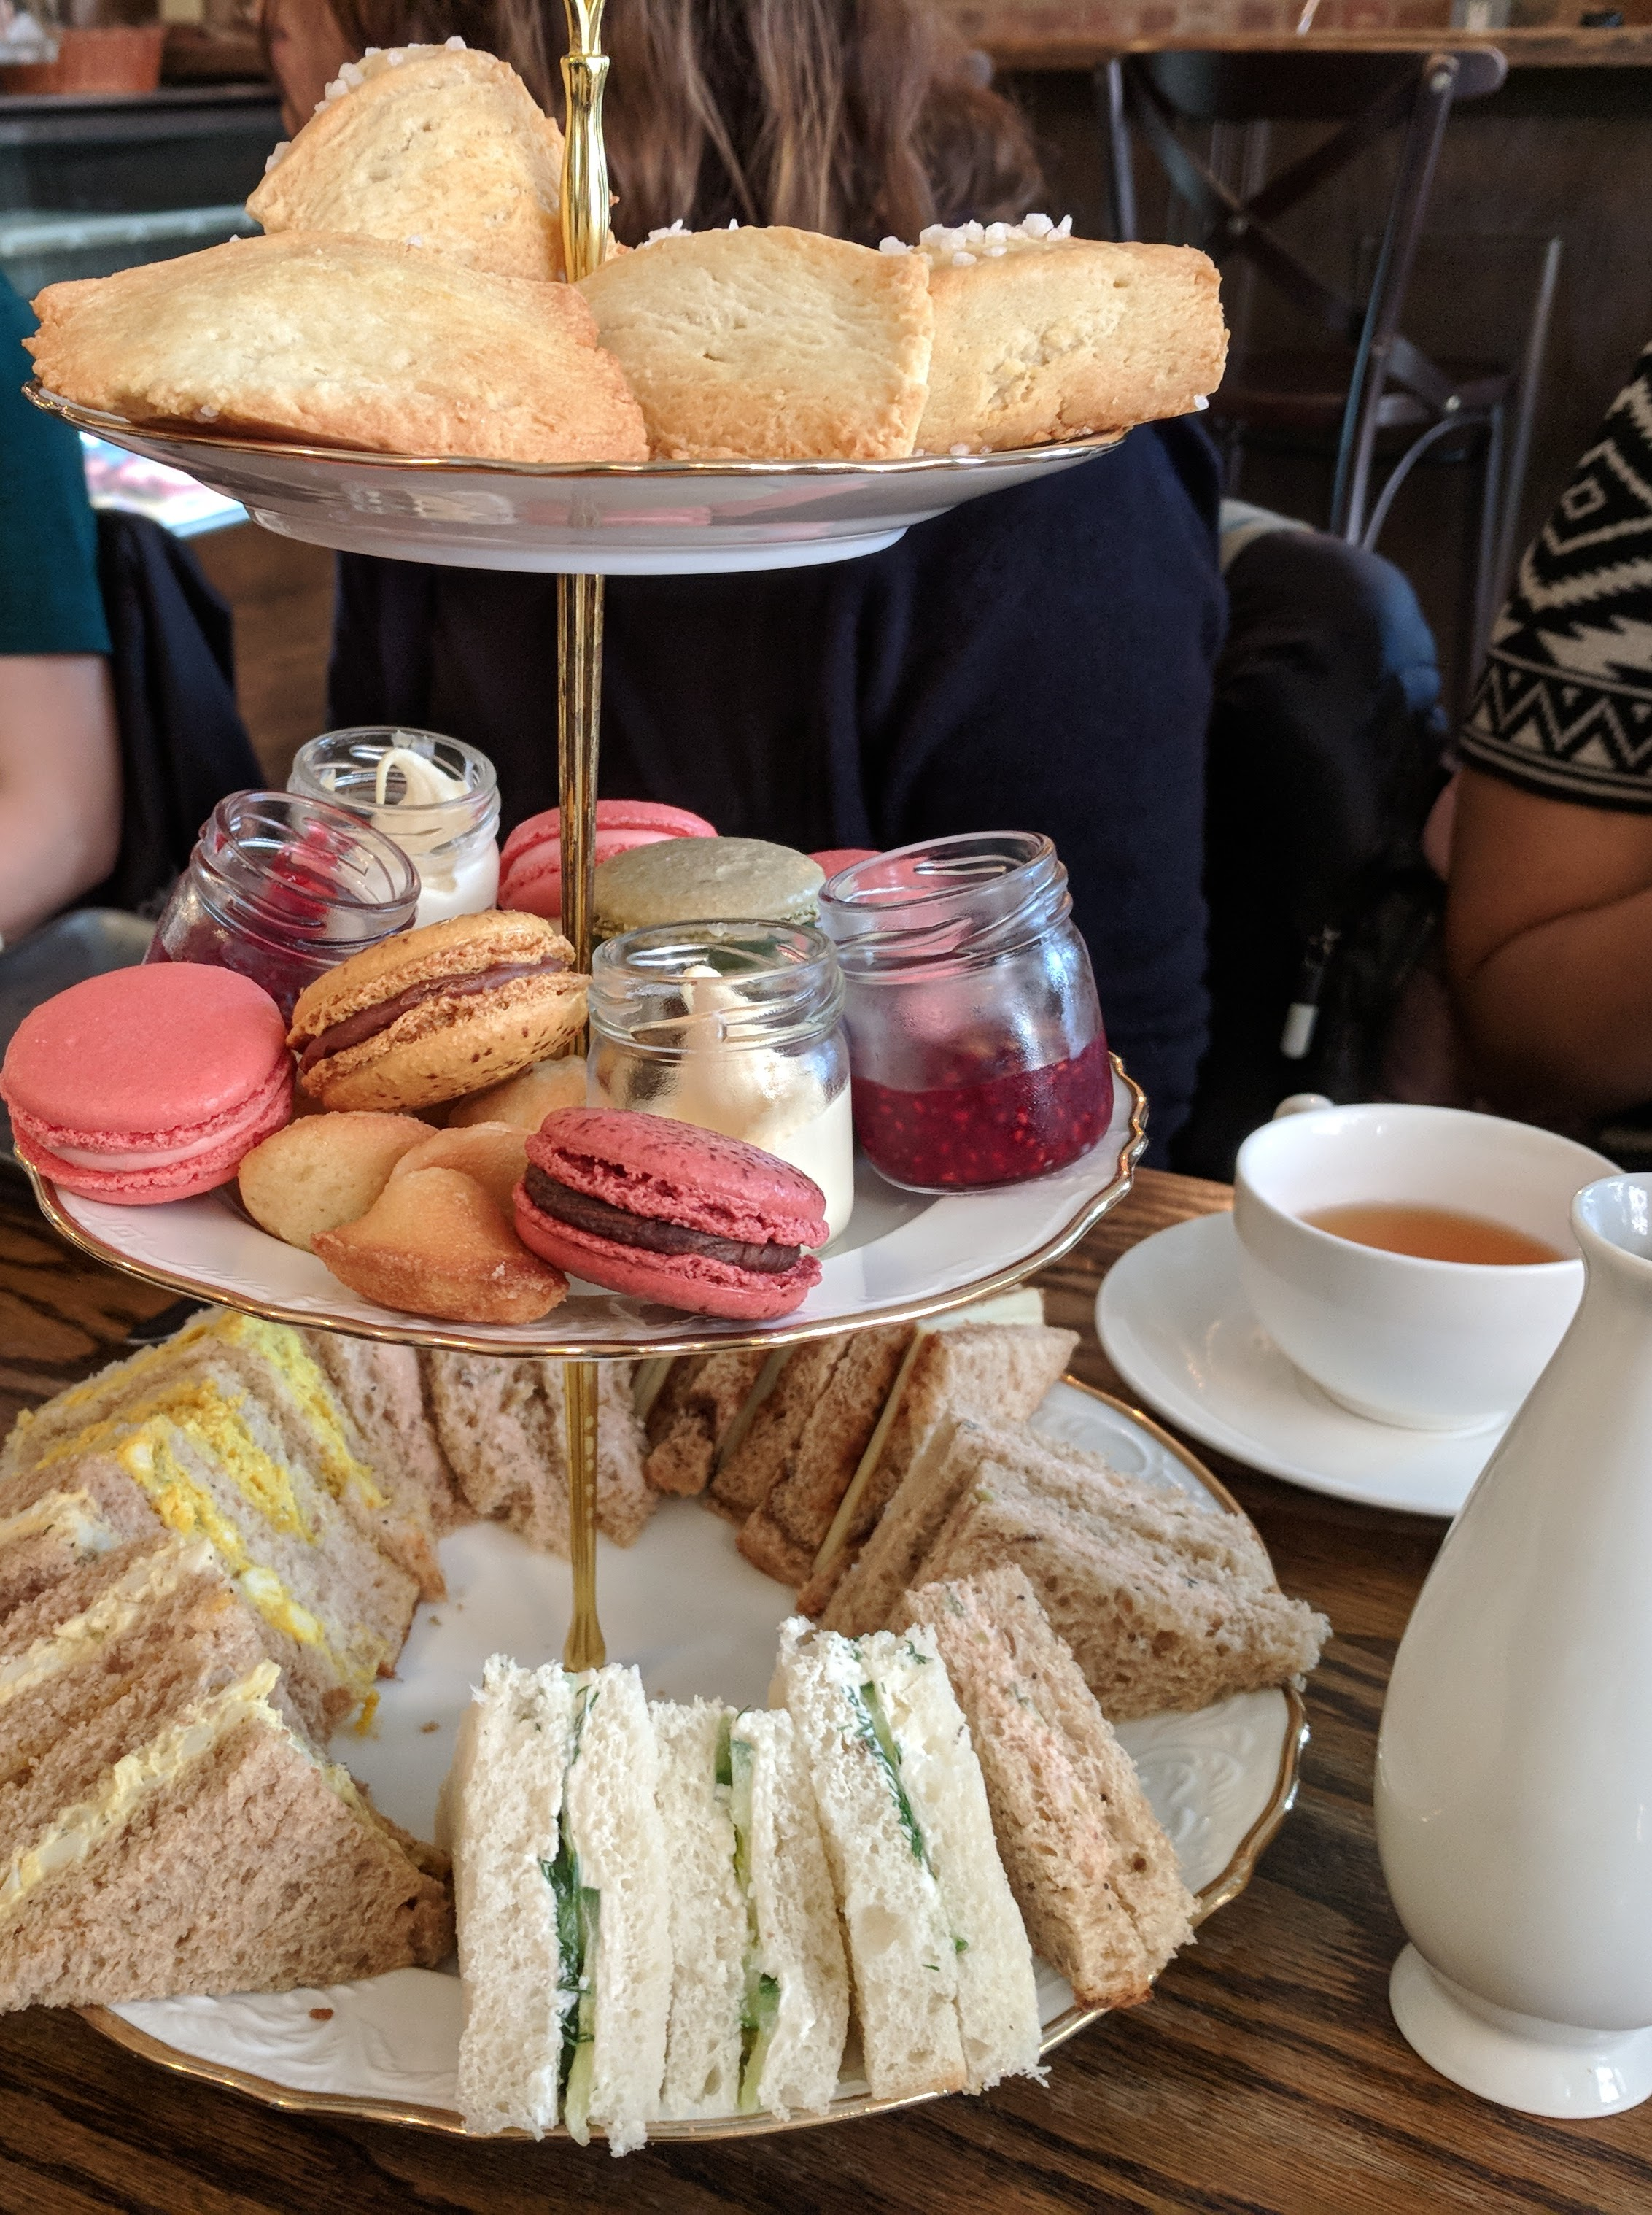 Afternoon tea. Where the best conversations happen.